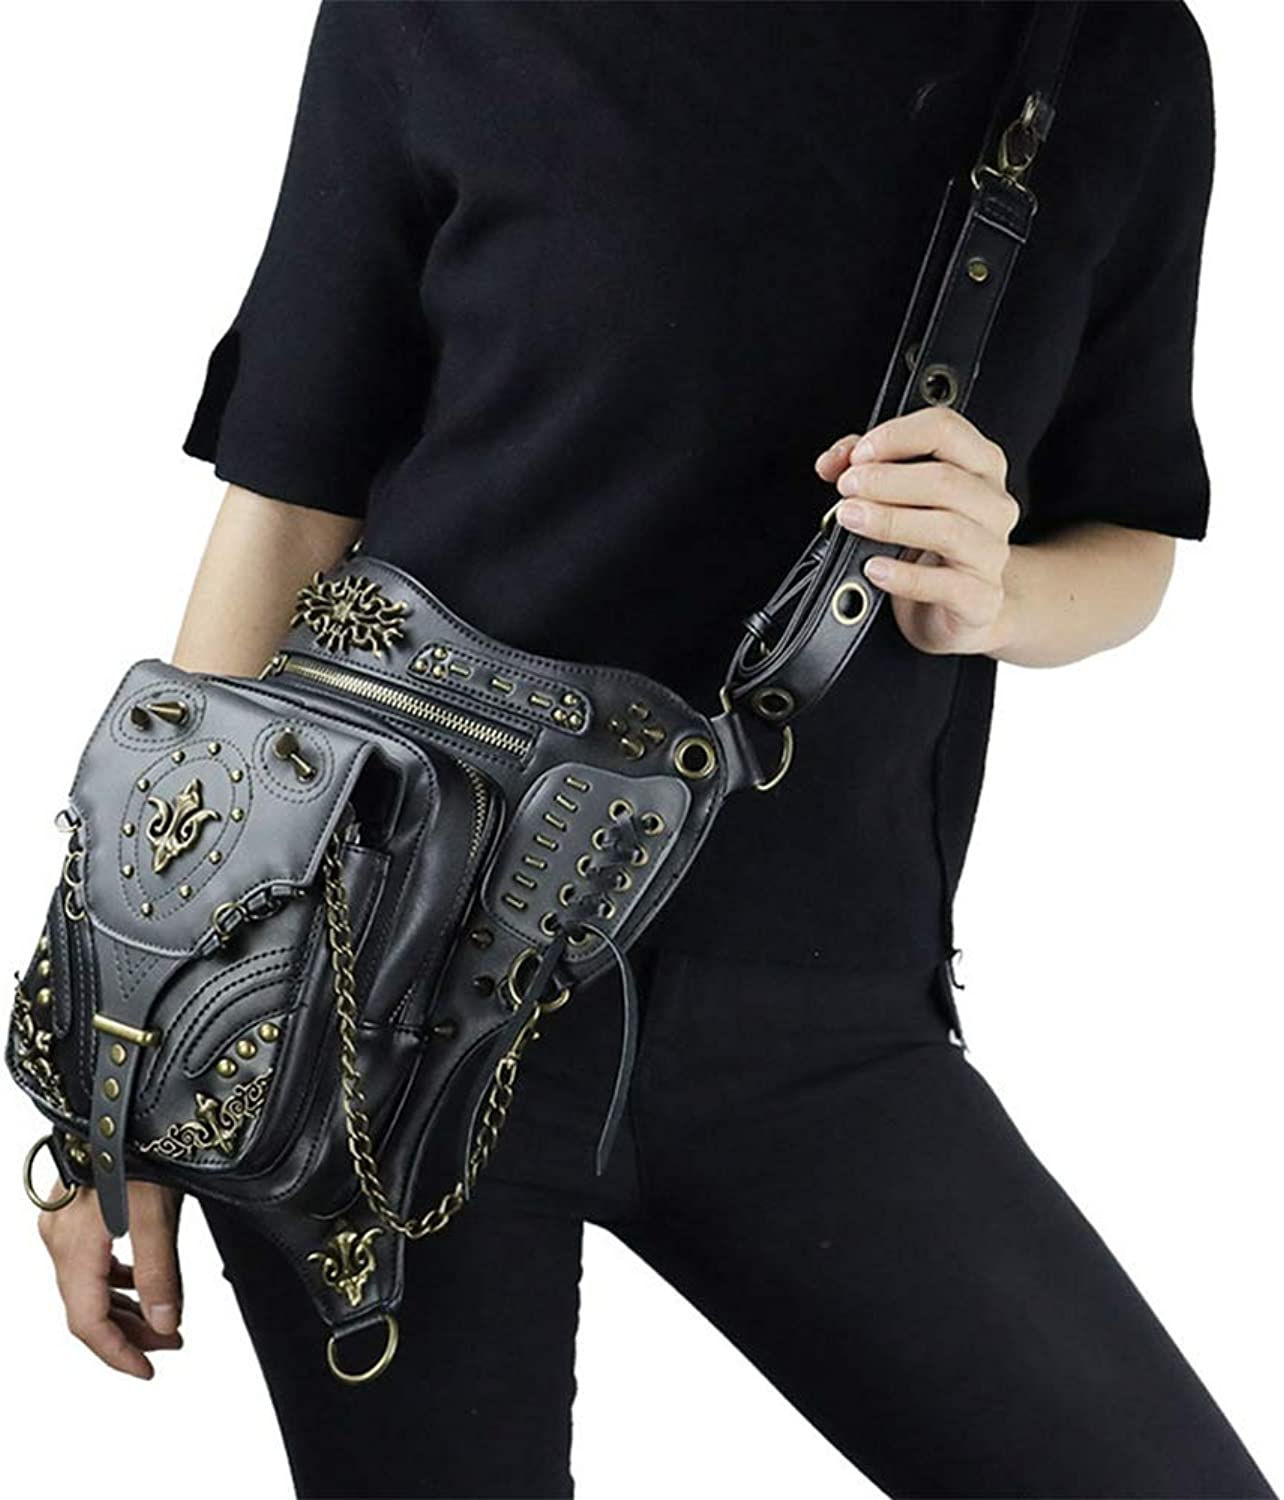 SmartHS PU Leather Steampunk Shoulder Bag Gothic Motorcycle Waist Leg Thigh Bag Black